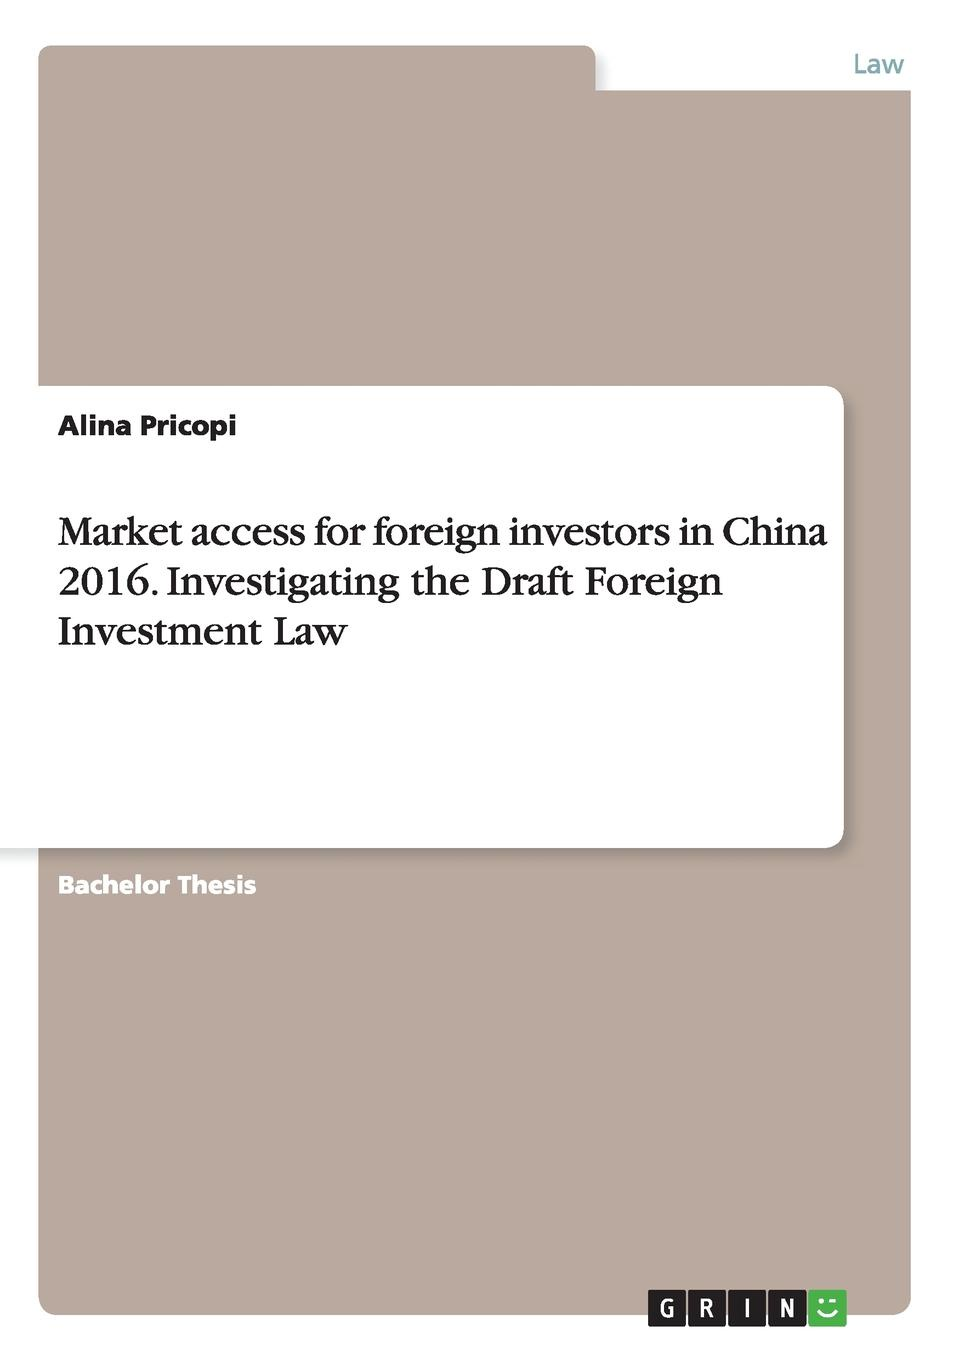 Alina Pricopi Market access for foreign investors in China 2016. Investigating the Draft Foreign Investment Law tibebu aragie impact foreign direct investment on domestic private investment in ethiopia